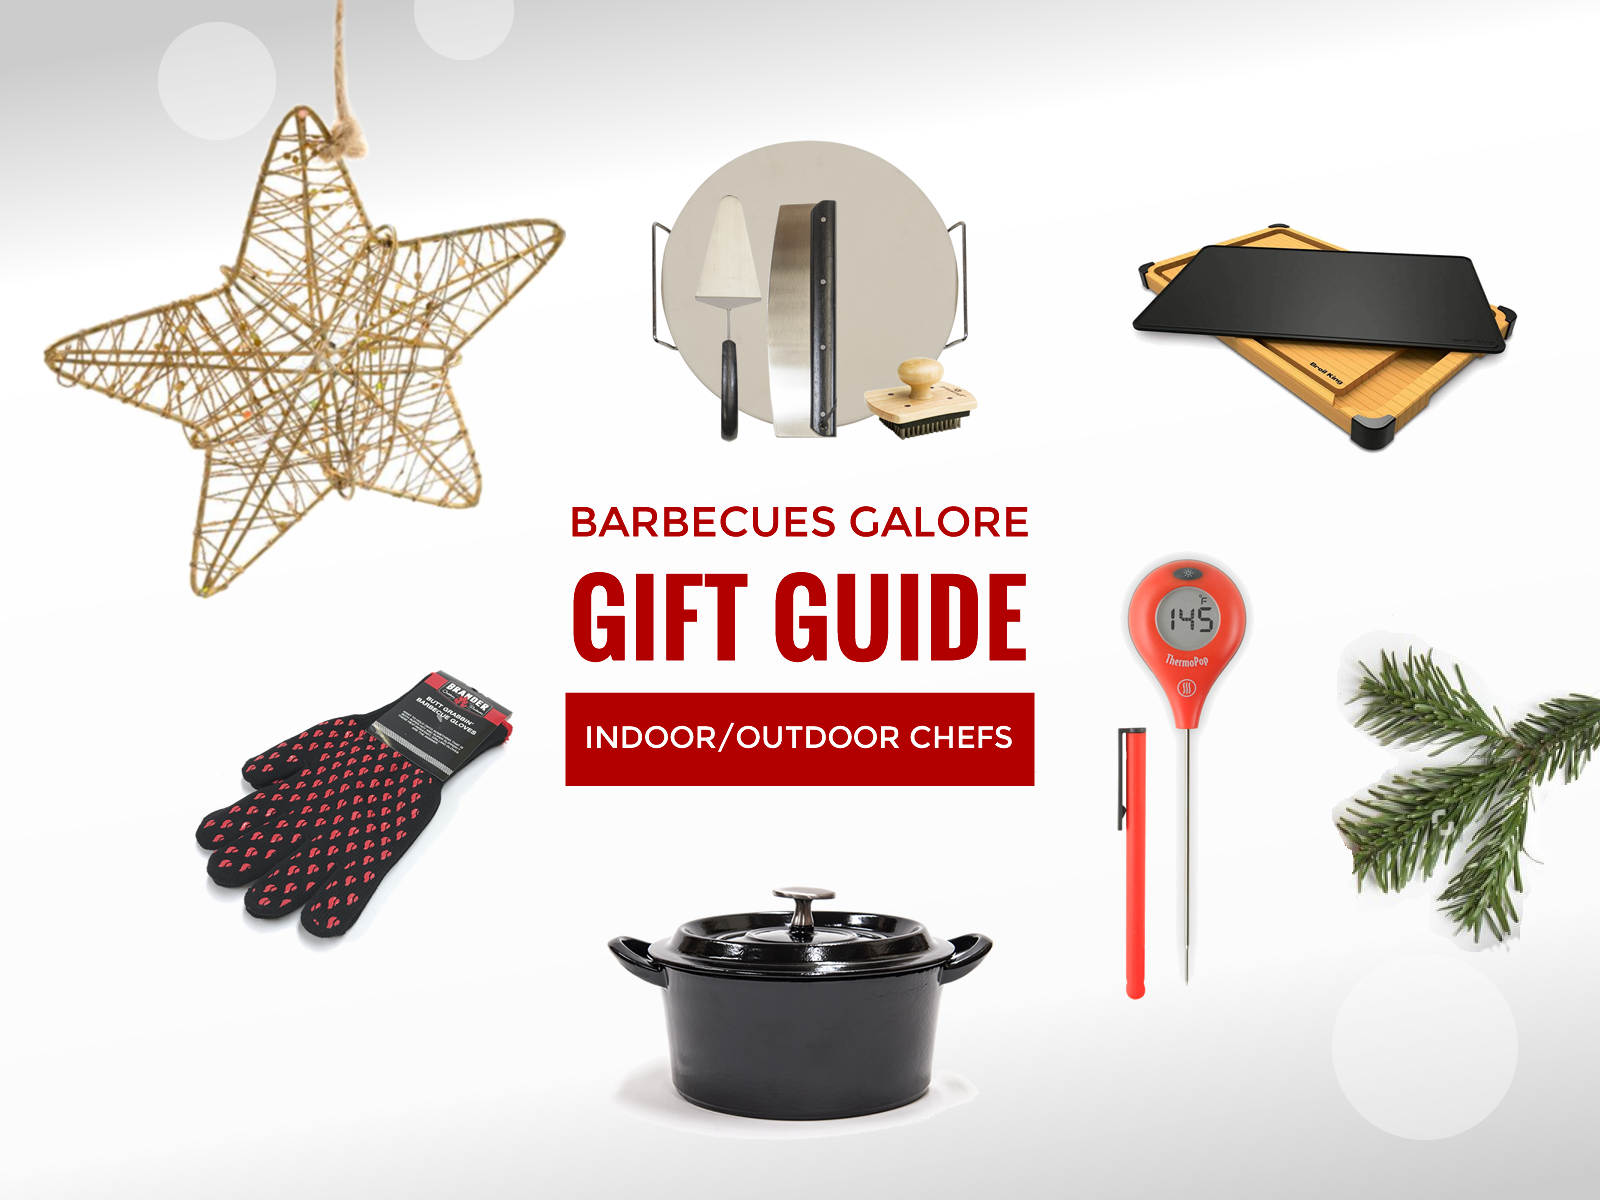 Barbecues Galore Gift Guide - Chefs Must Haves